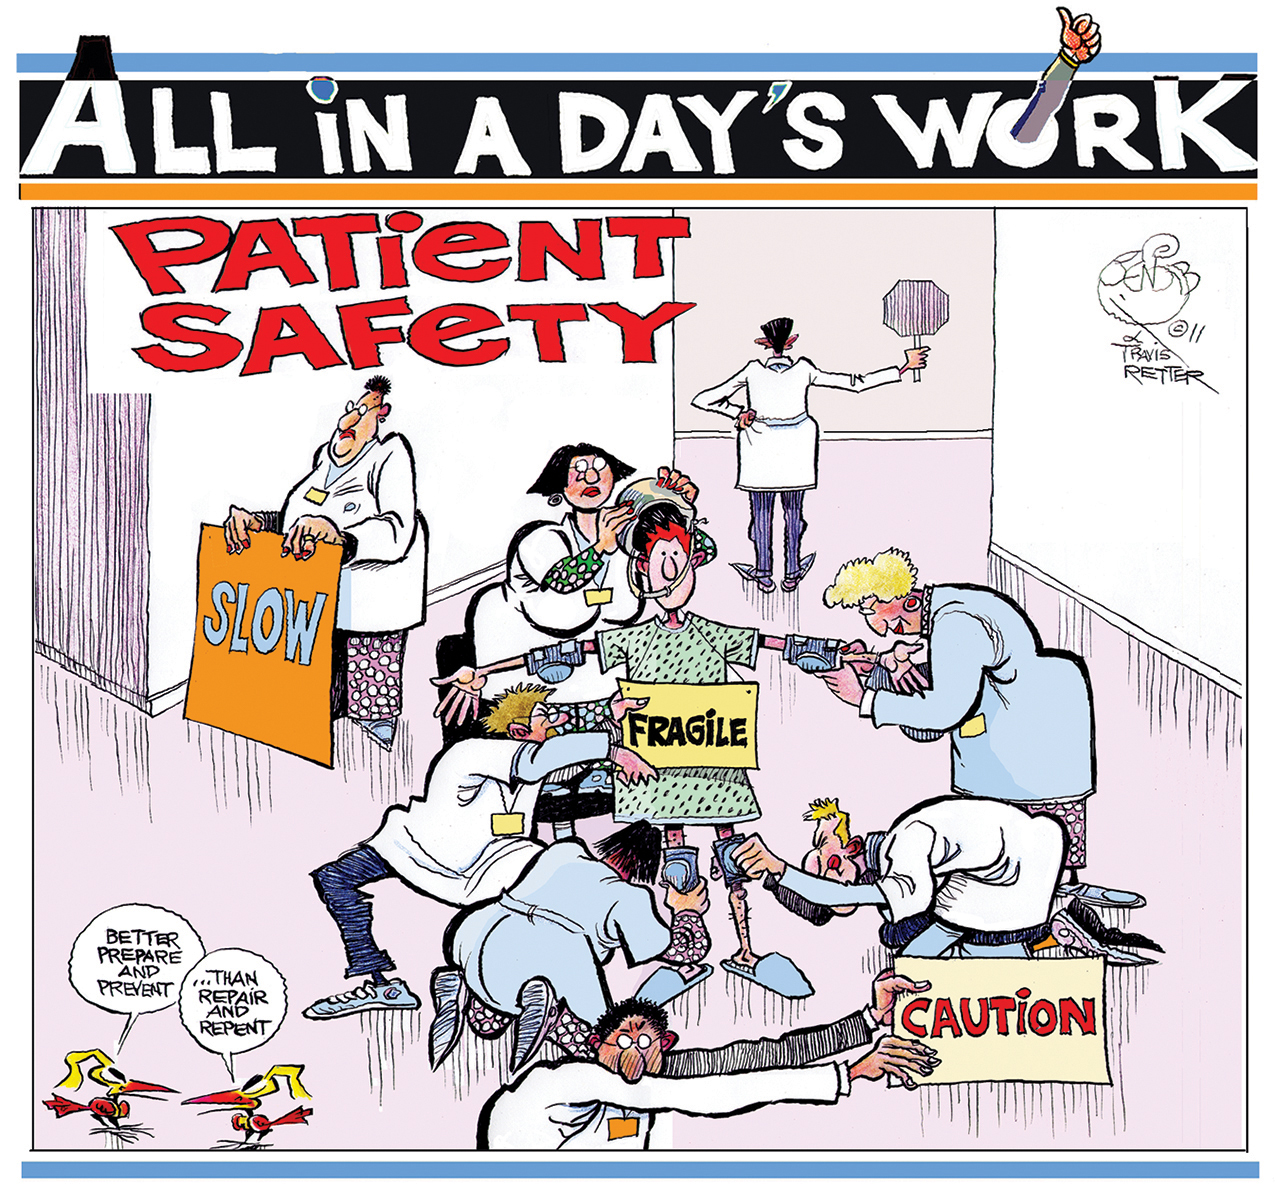 All in a Day's Work: Patient Safety | Labor Management ...